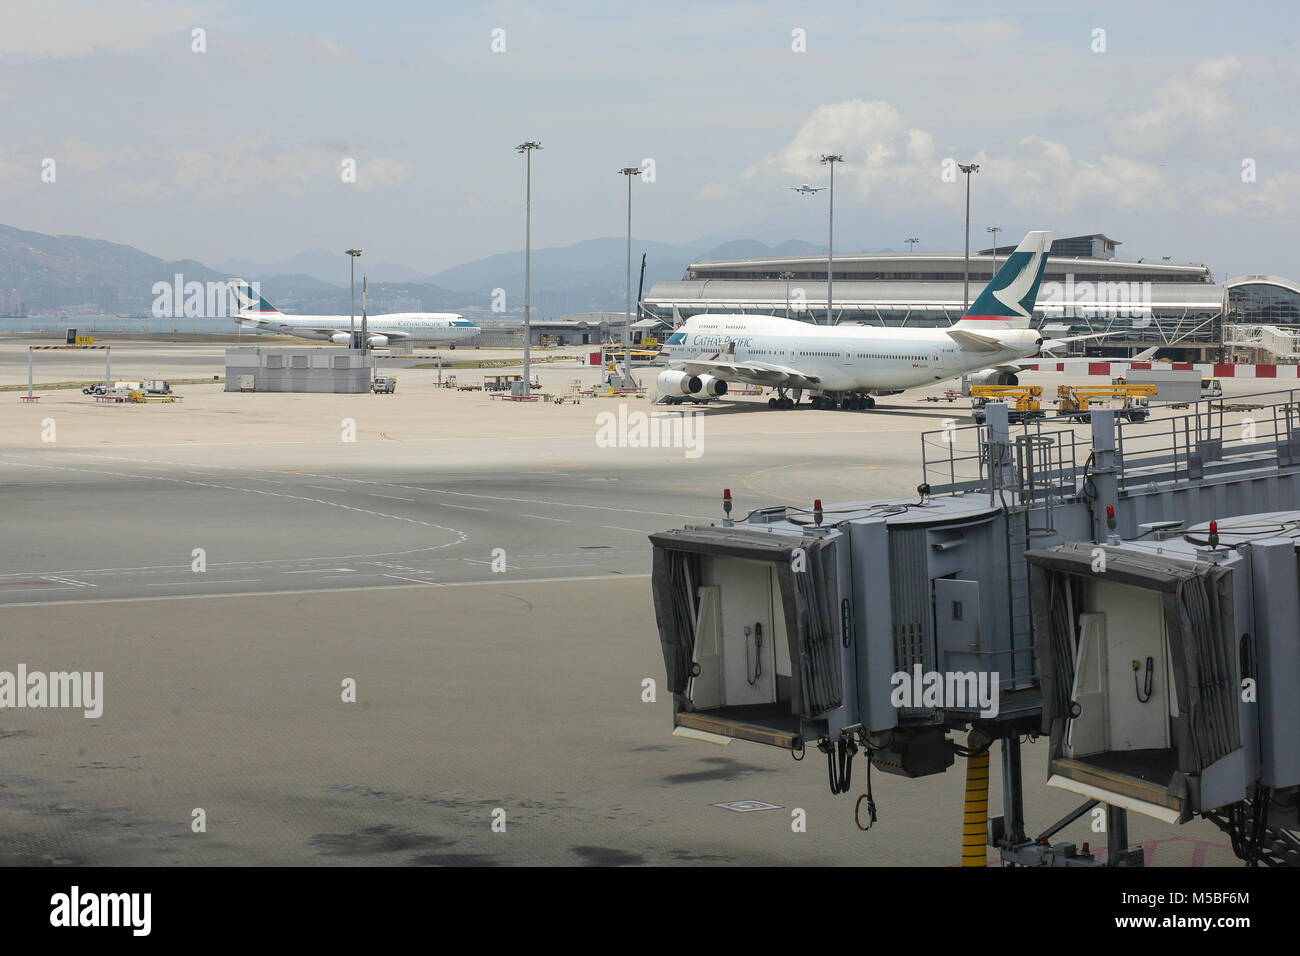 Two planes of the Cathay pacific company in the hub of Chek Lap kok airport in Hong Kong. - Stock Image